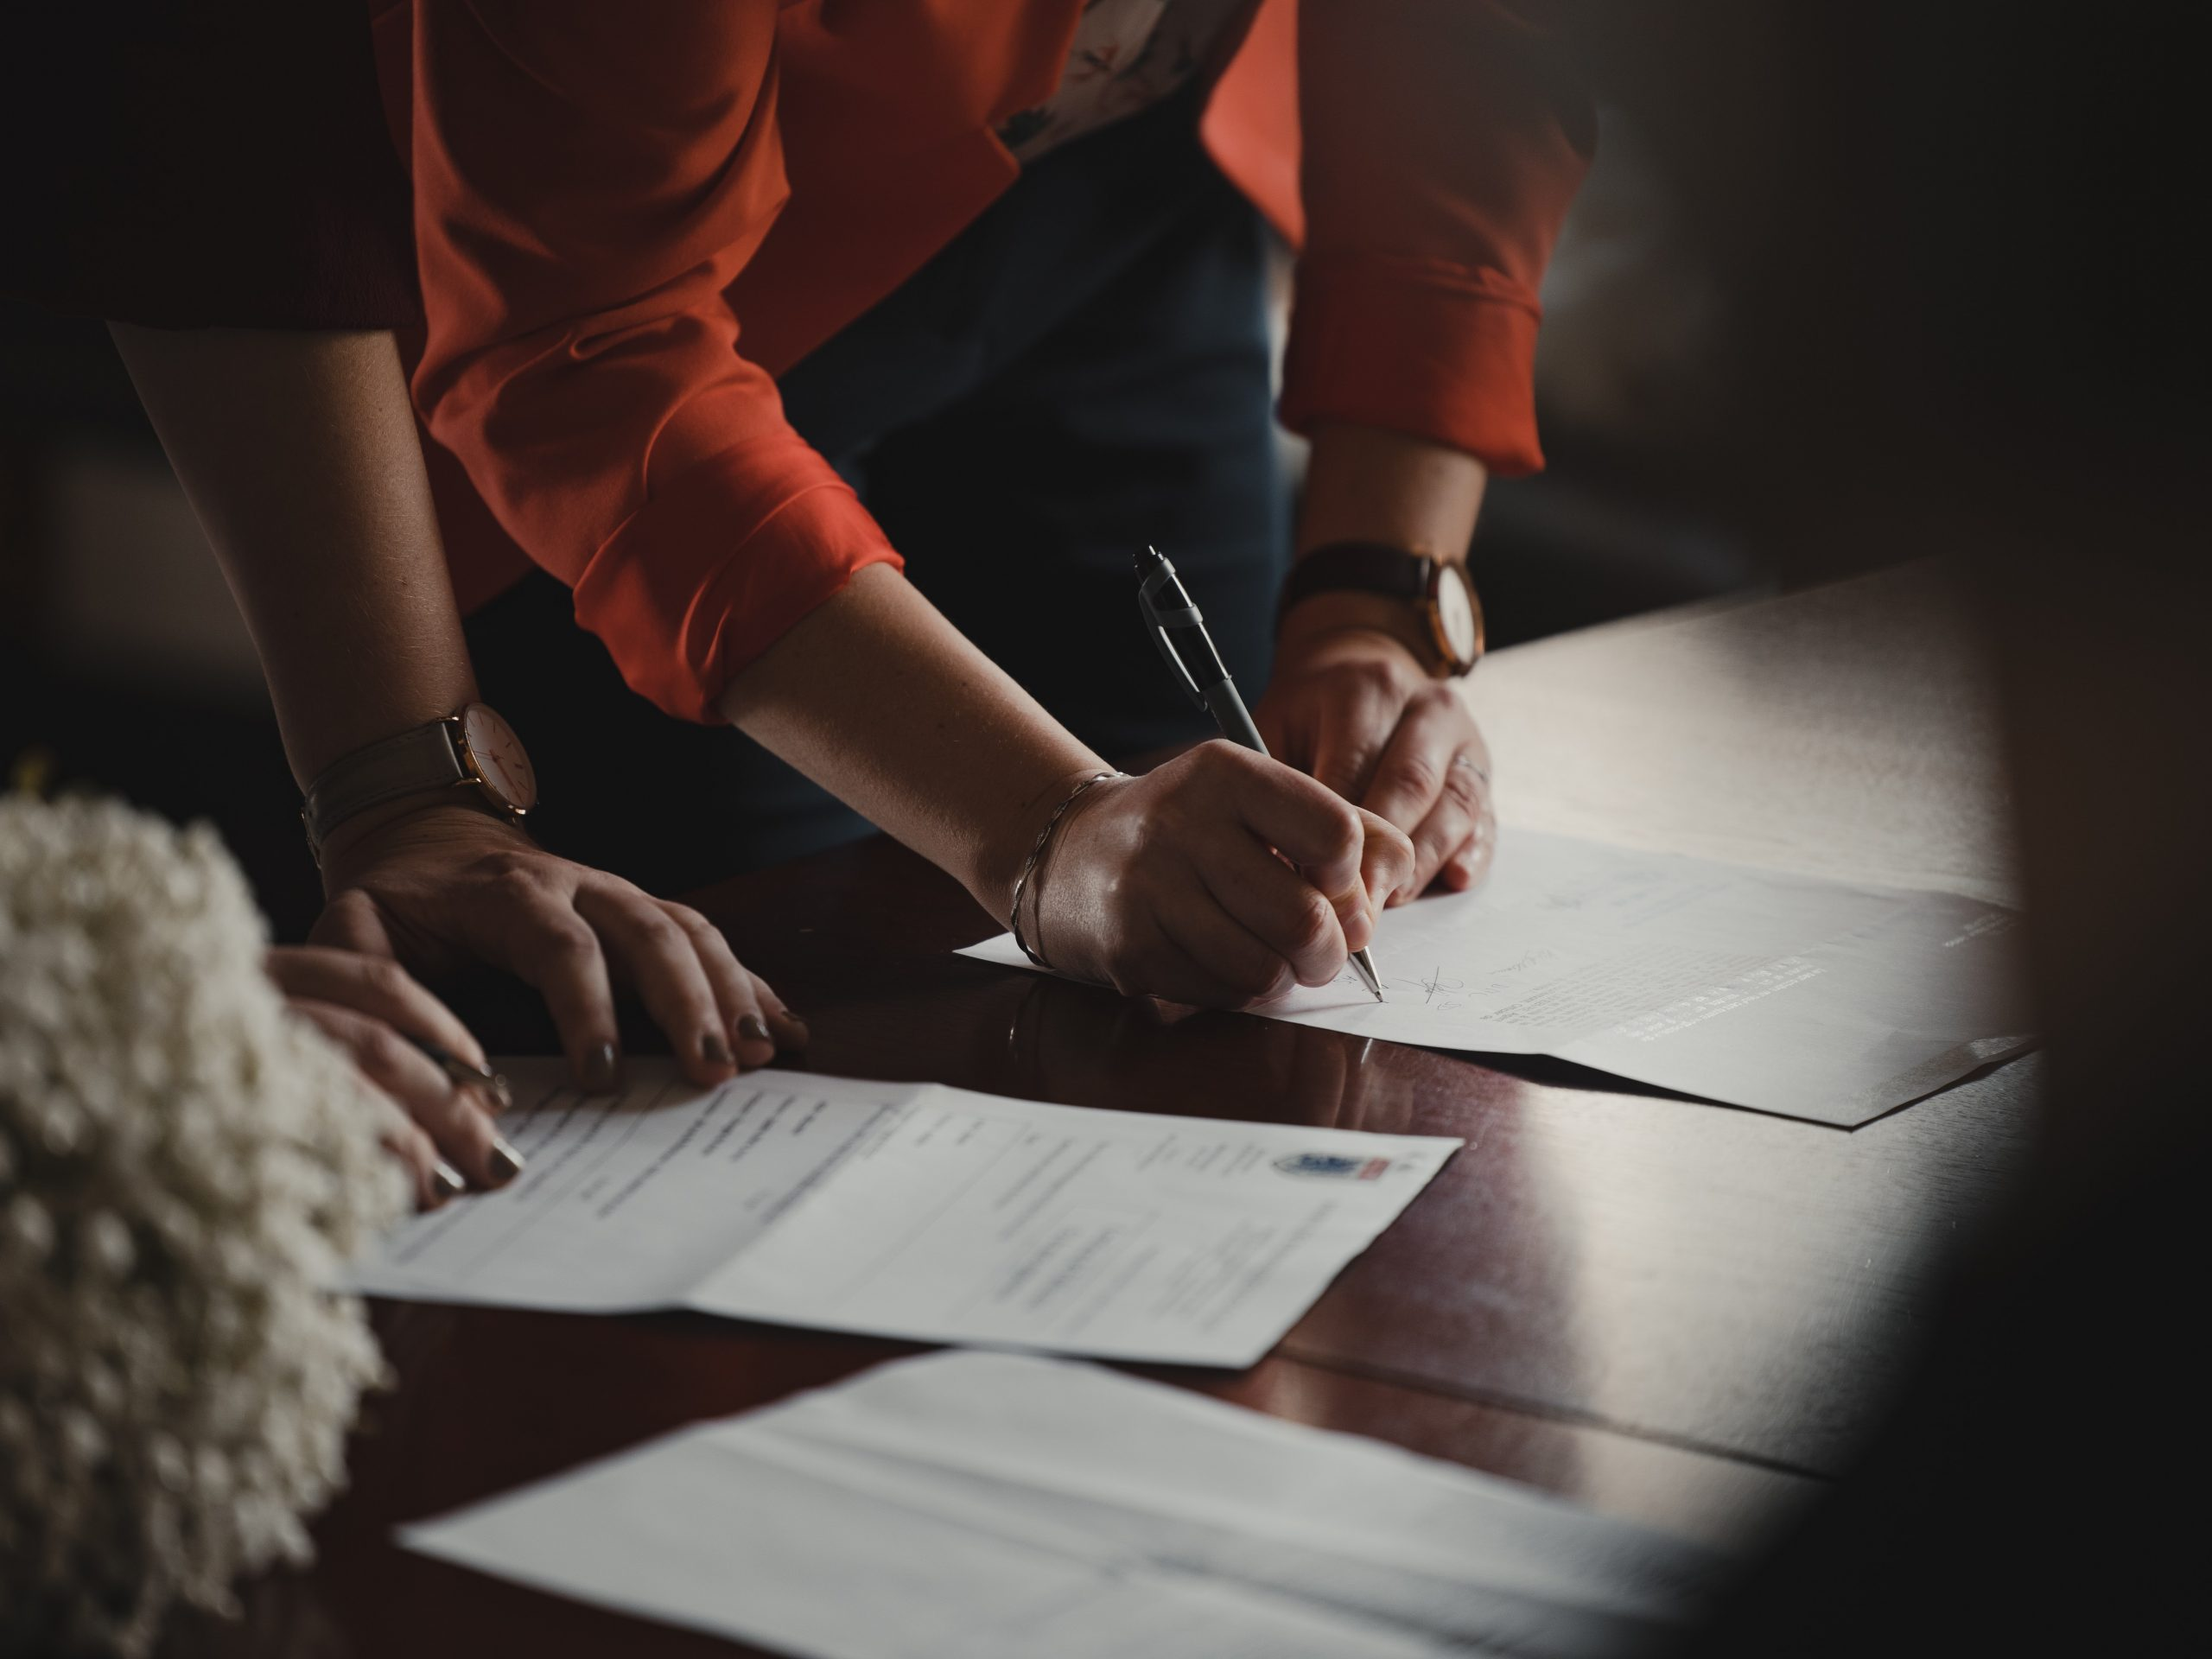 Two people look over and sign paperwork on a table